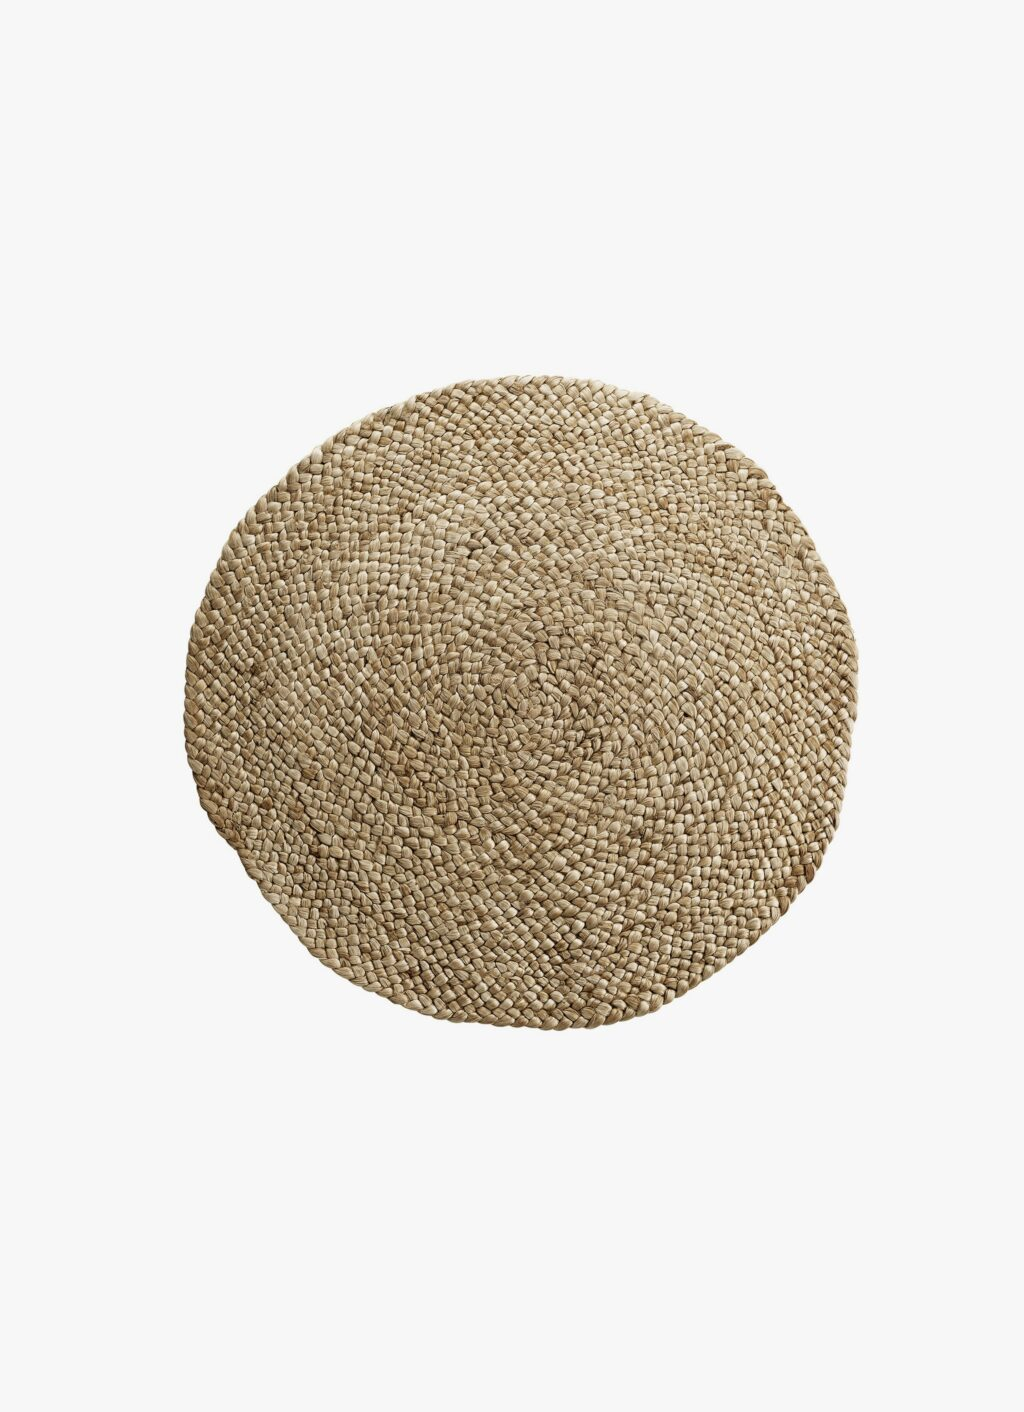 Handwoven Jute Rug - natural - Made to order - round - dif. sizes